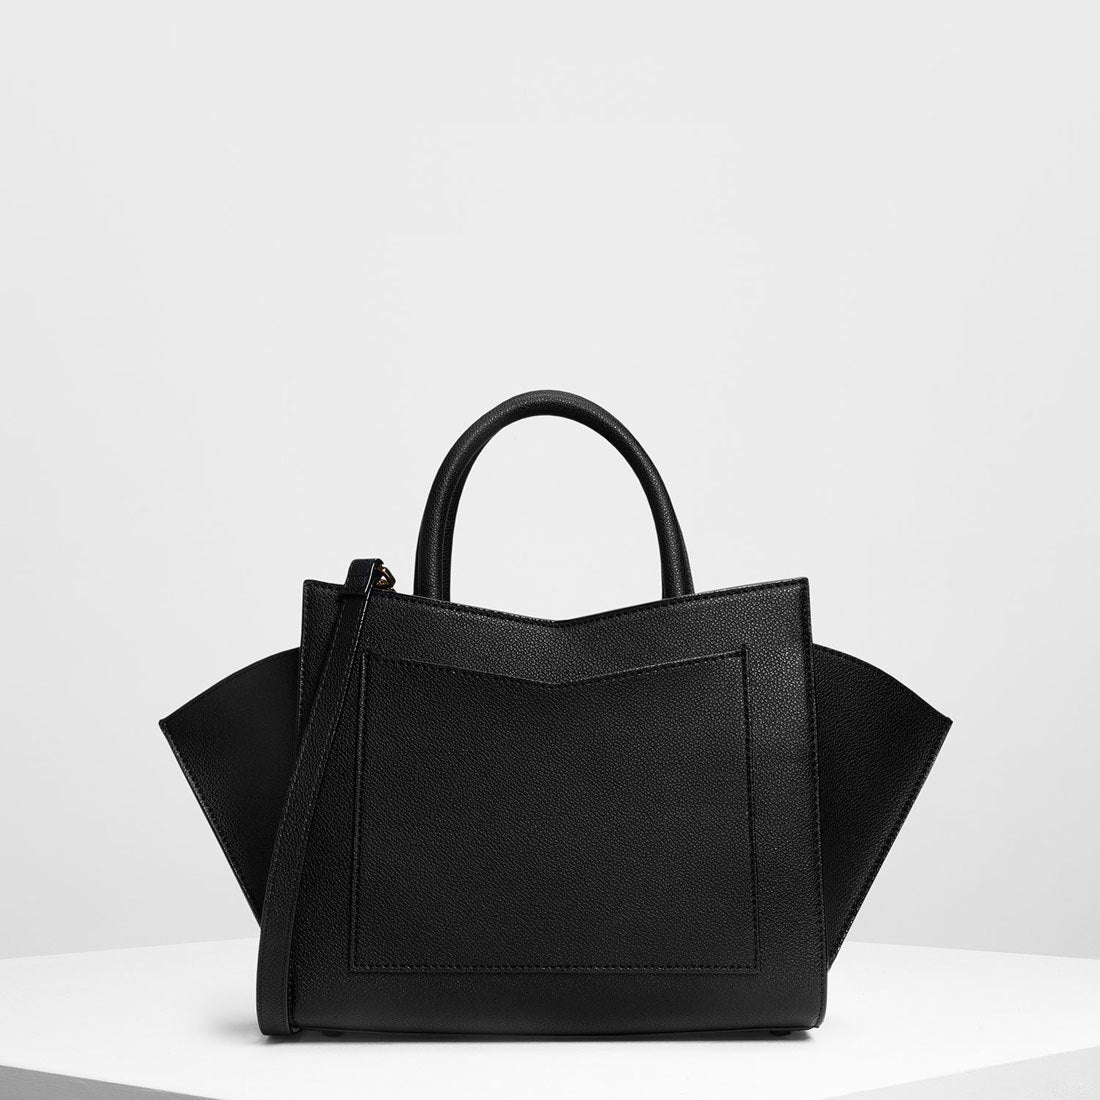 8cceca2dbf52 CHARLES & KEITH ジオメトリック ストラクチャーシティバッグ / Geometric Structured City Bag  (Black)-CHARLES & KEITH公式オンラインストア